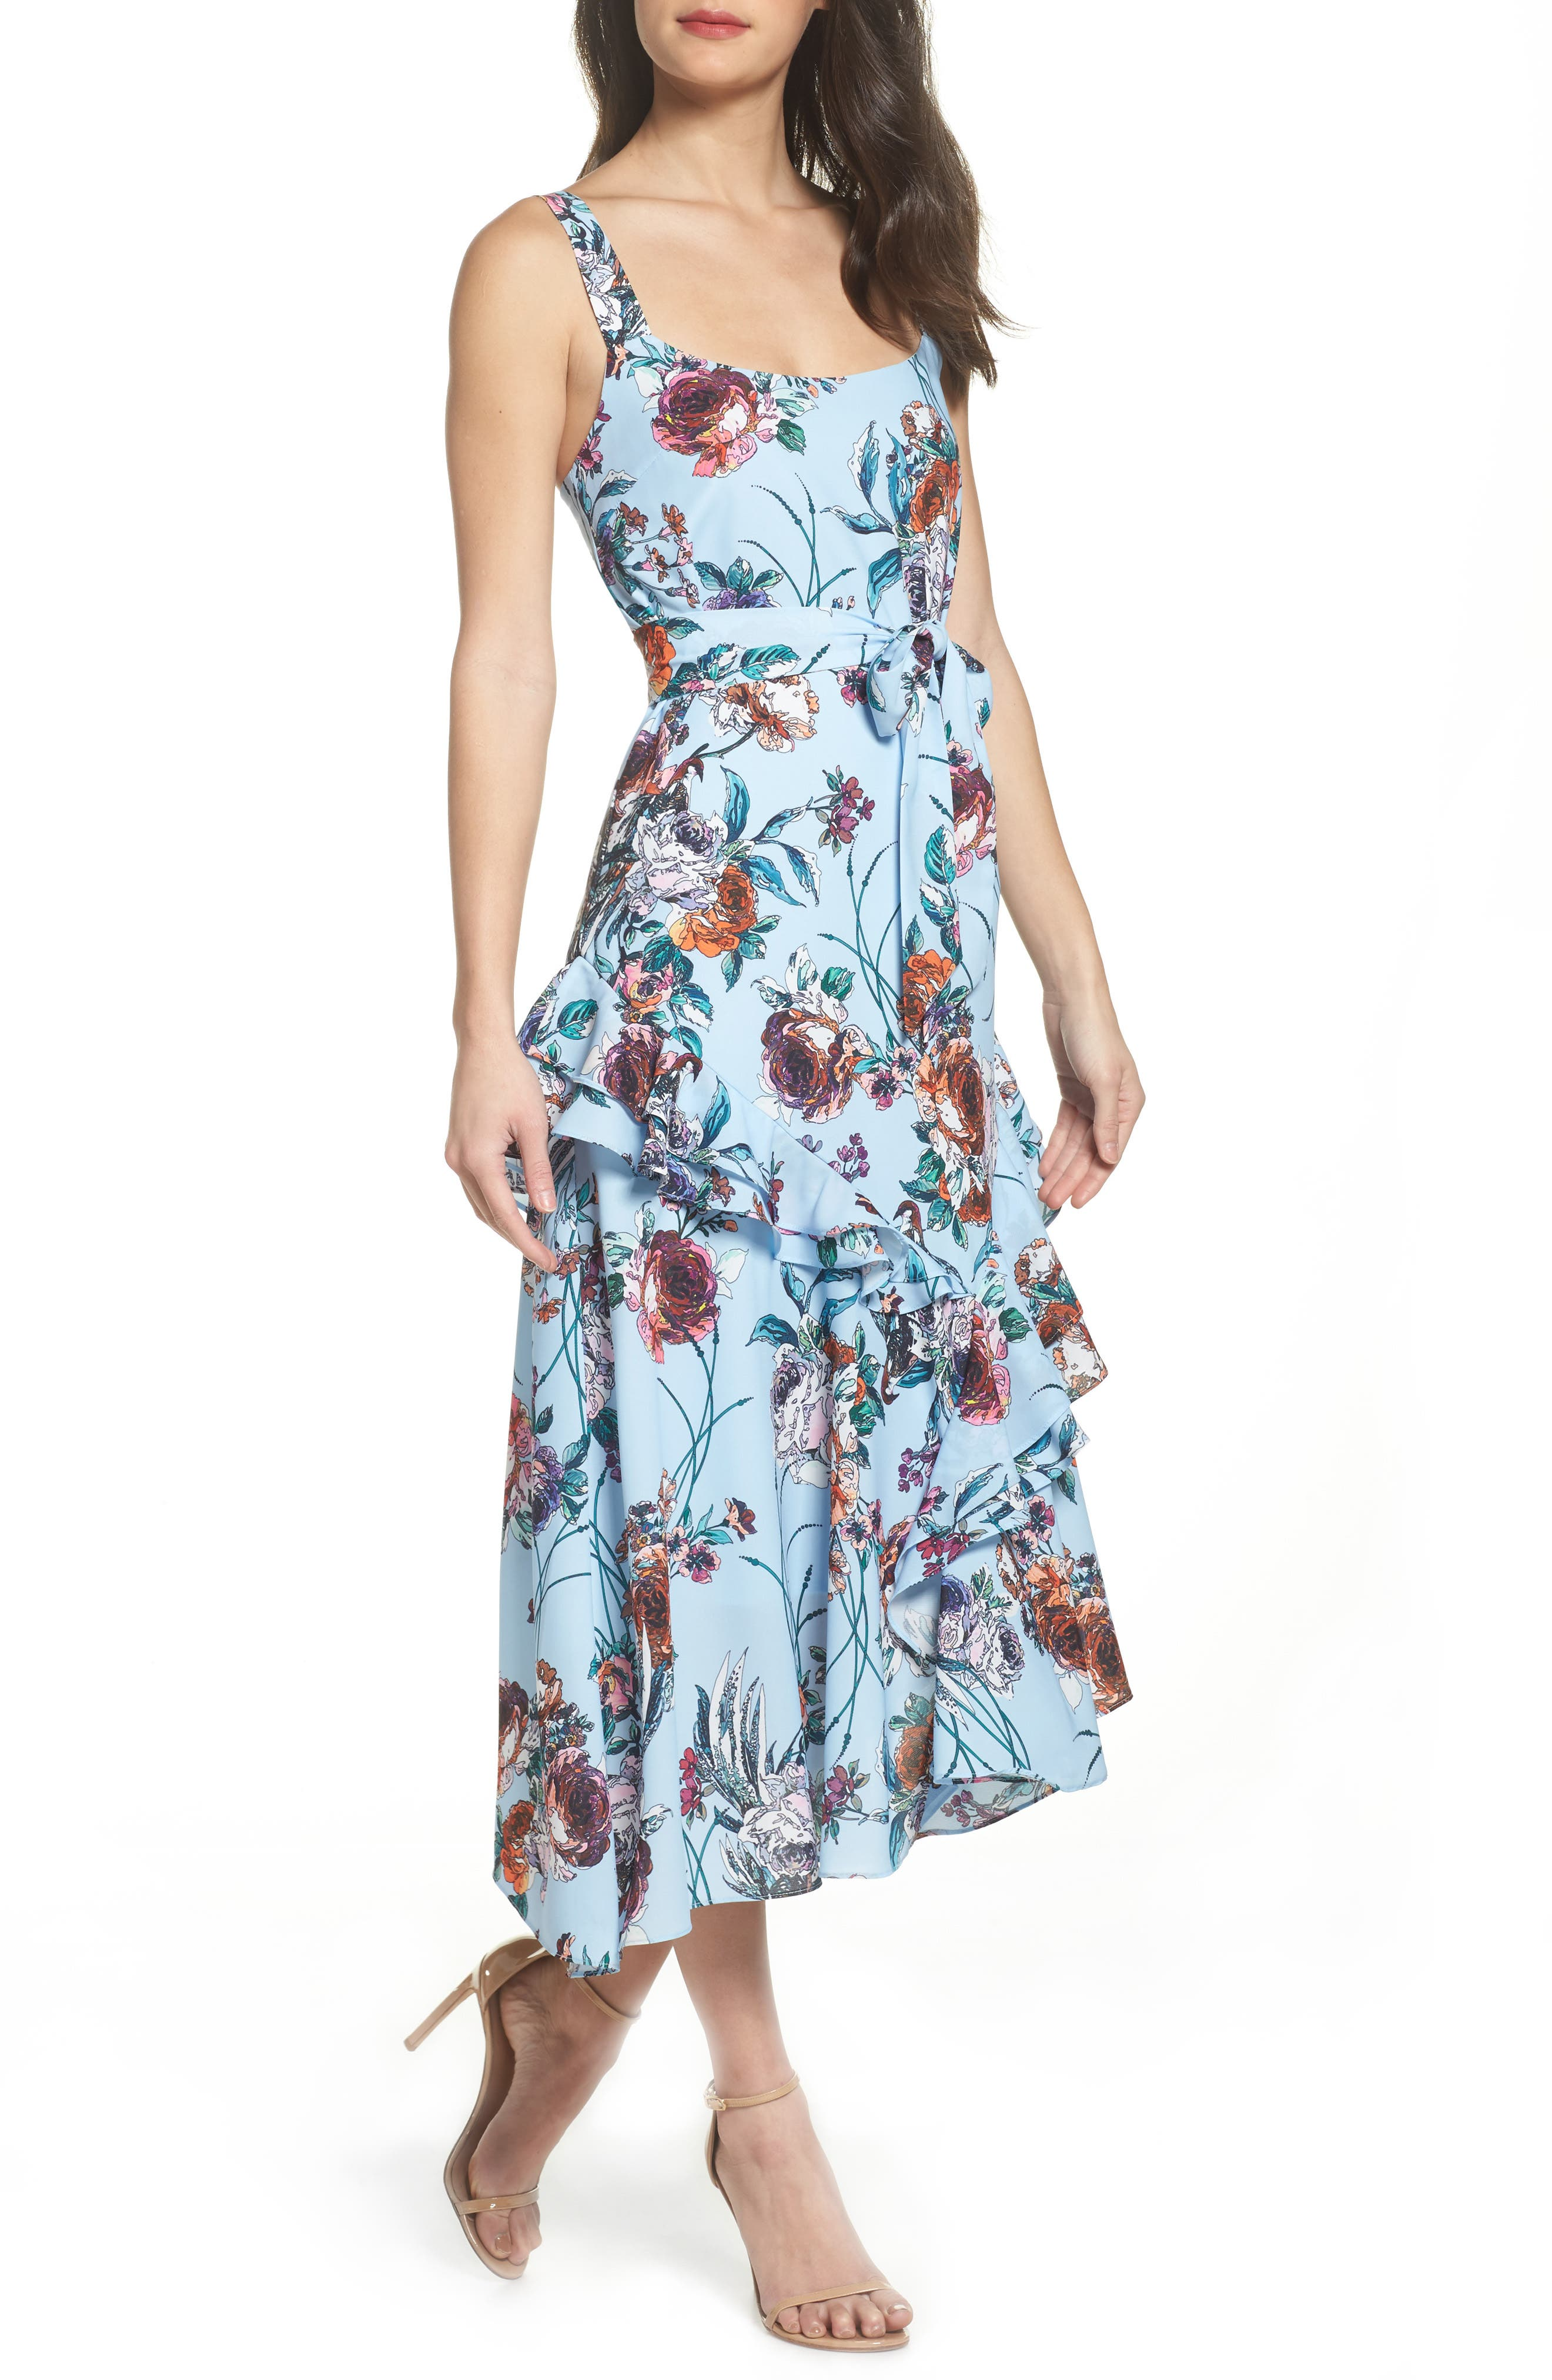 Cooper St. Botanical Asymmetric Ruffle Sundress